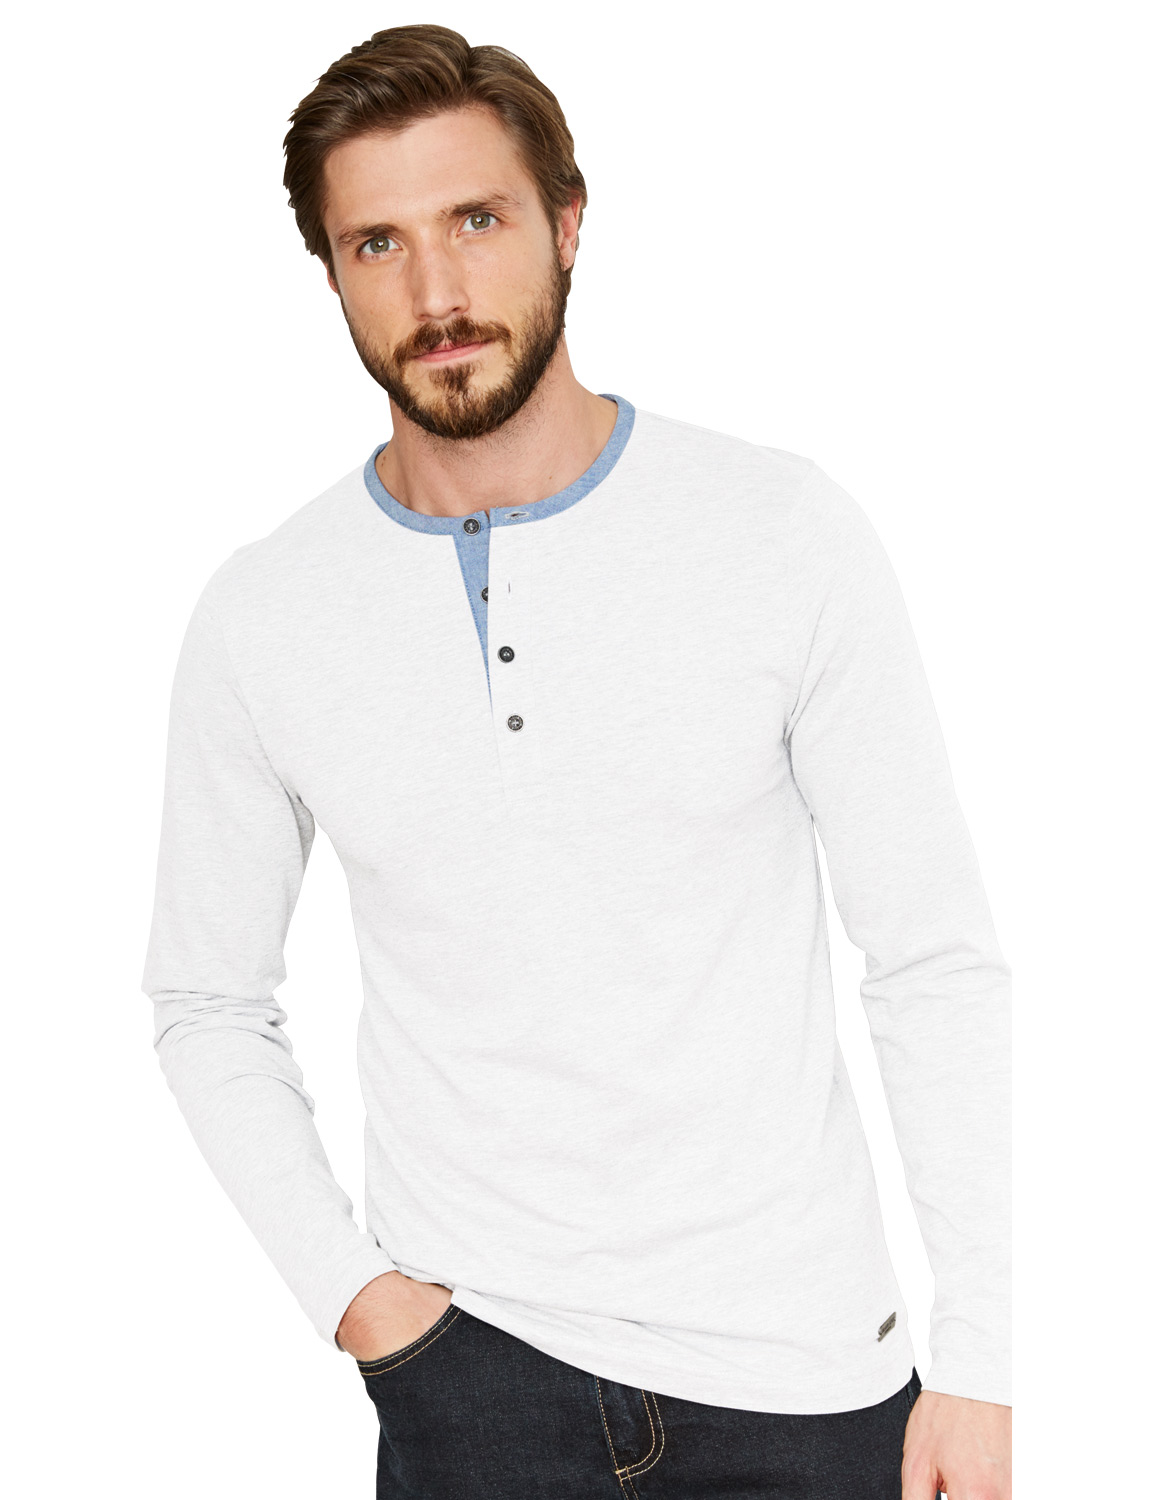 Mens Brave Soul Long Sleeve Cotton Top White S | eBay